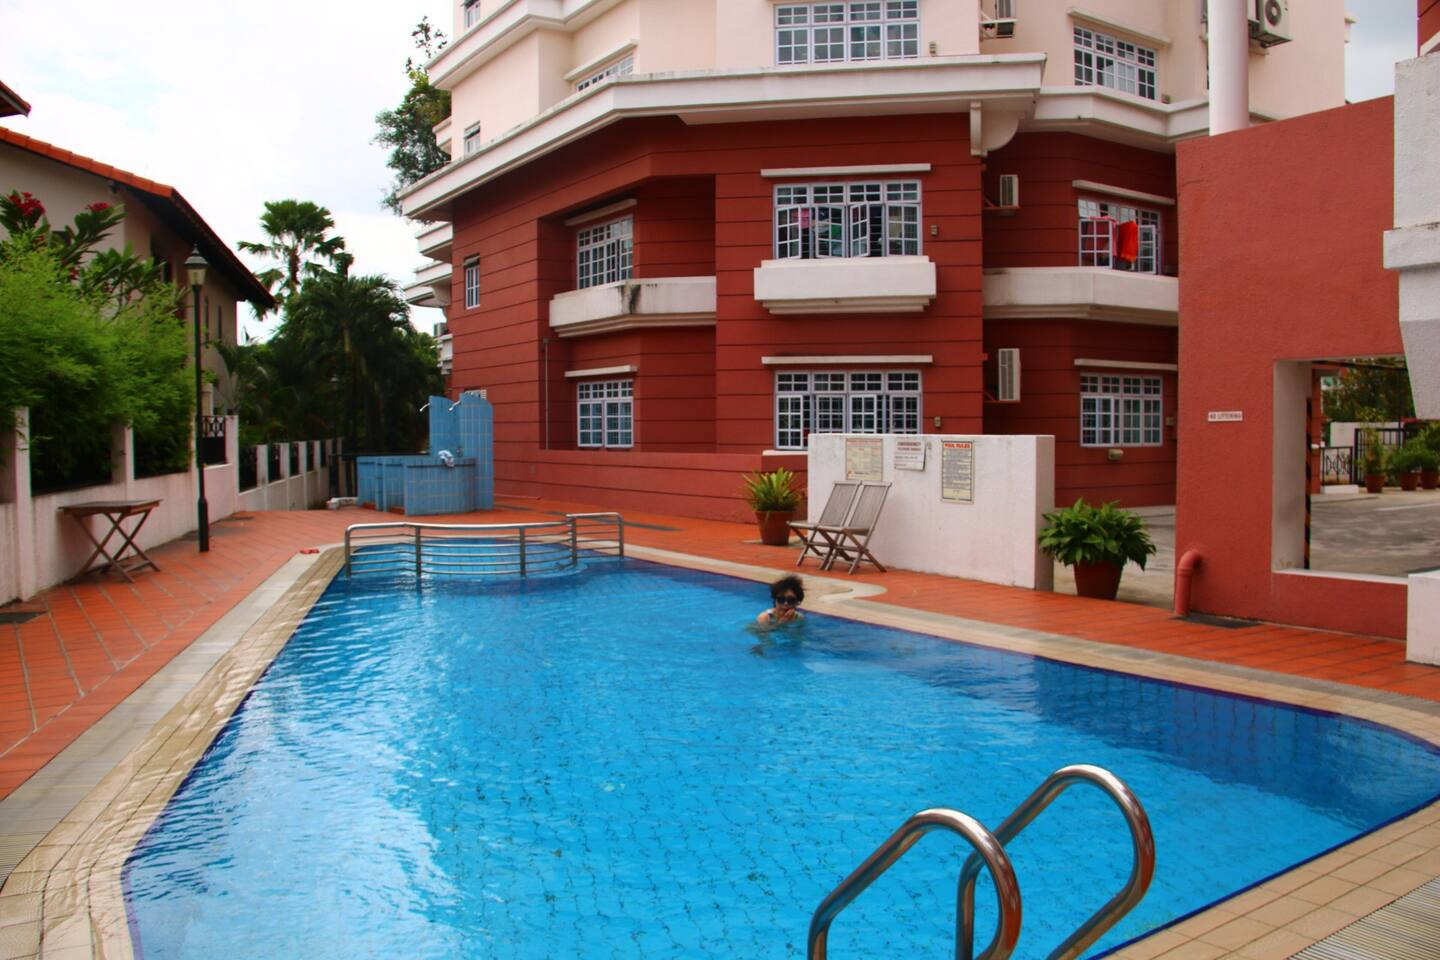 the condo's facilities, BBQ and swimming pool